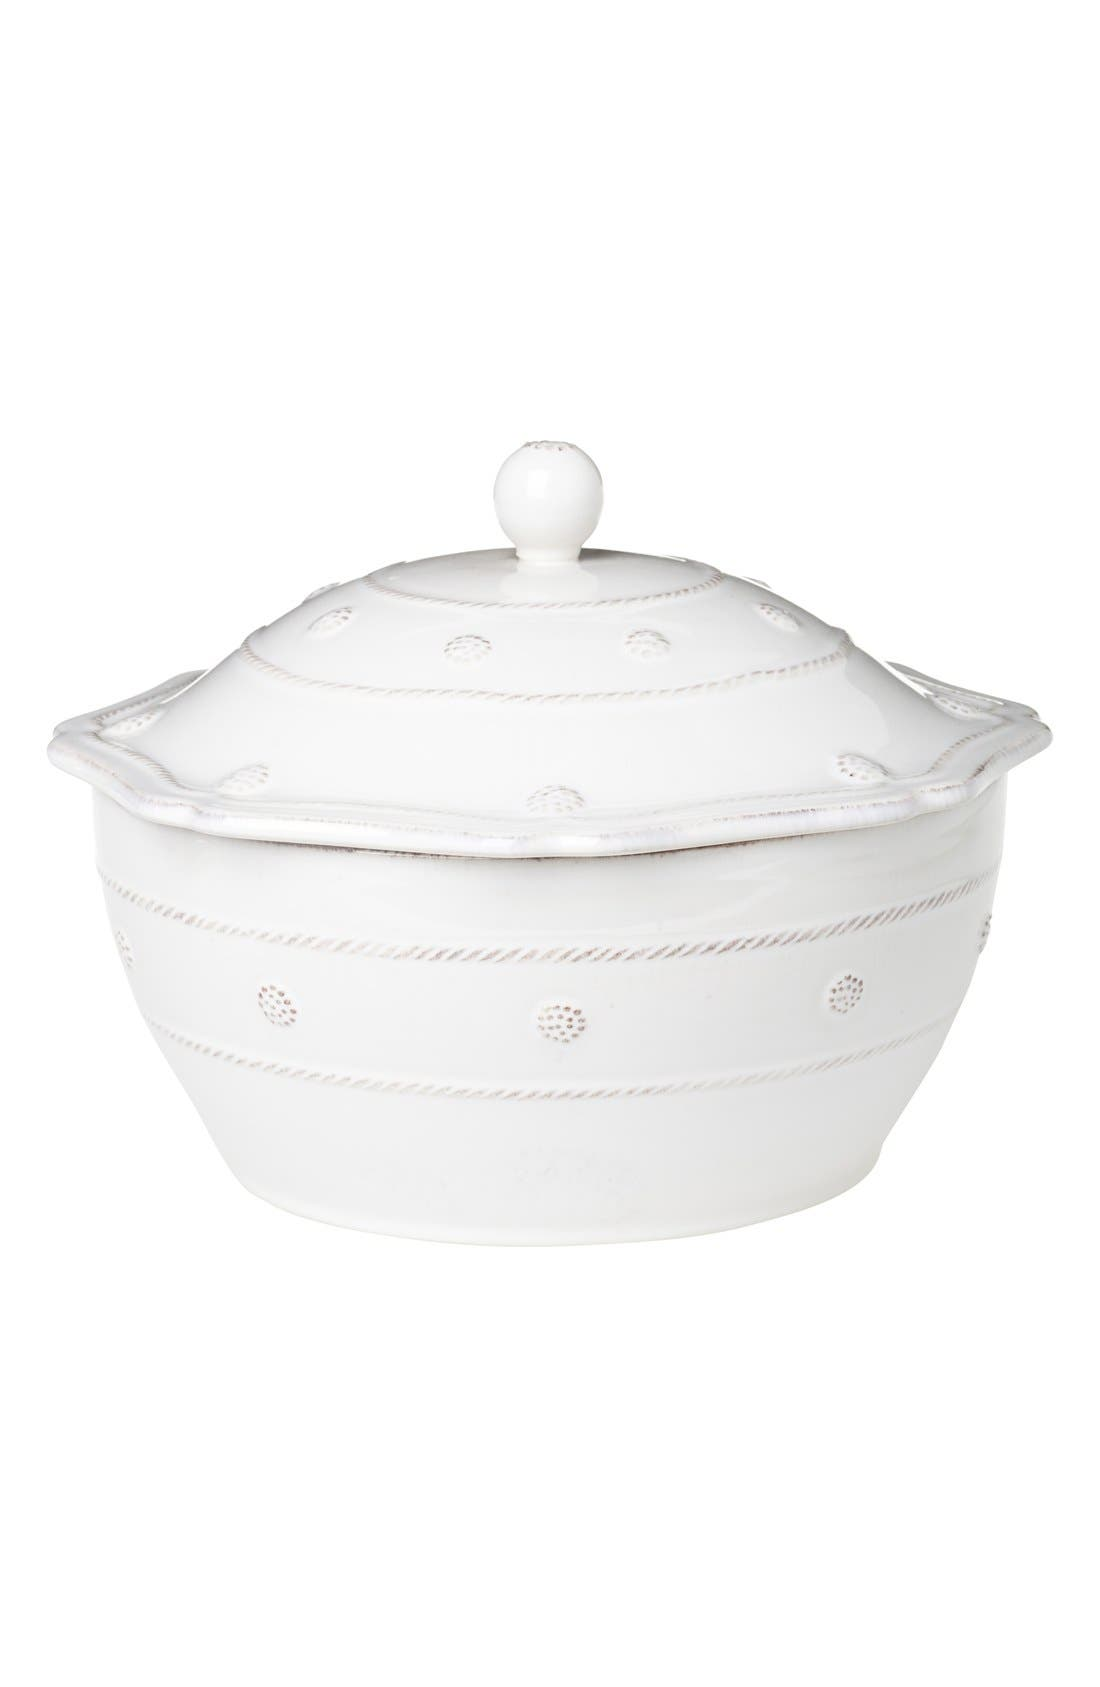 'Berry and Thread' Casserole Dish with Lid,                         Main,                         color, Whitewash